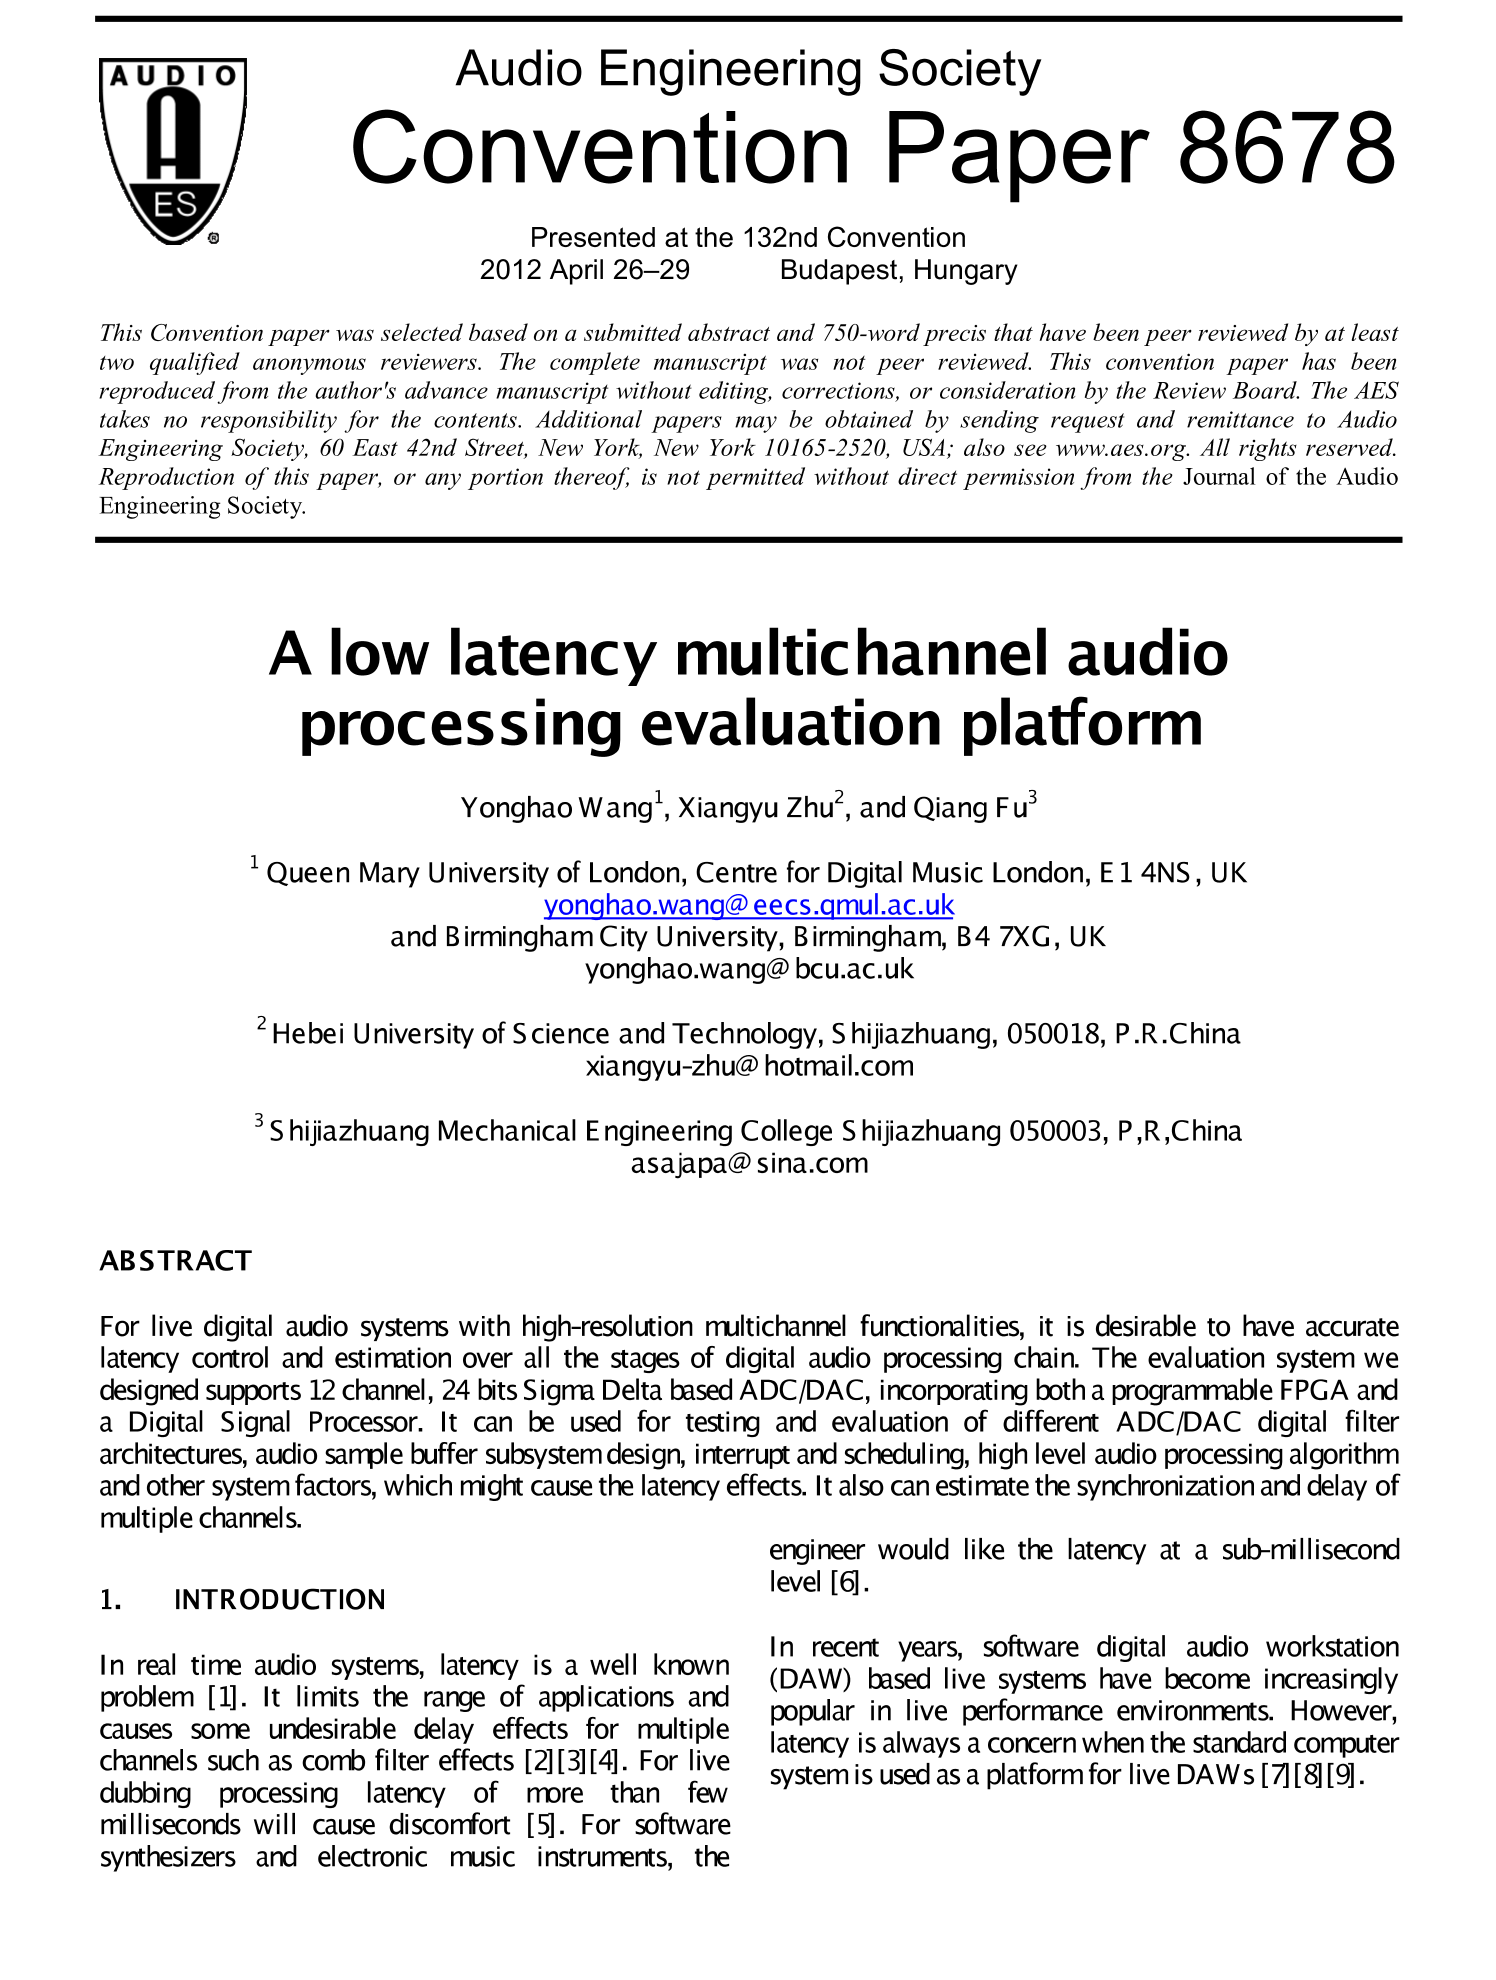 Aes E Library A Low Latency Multichannel Audio Processing Digital Platform Evaluation